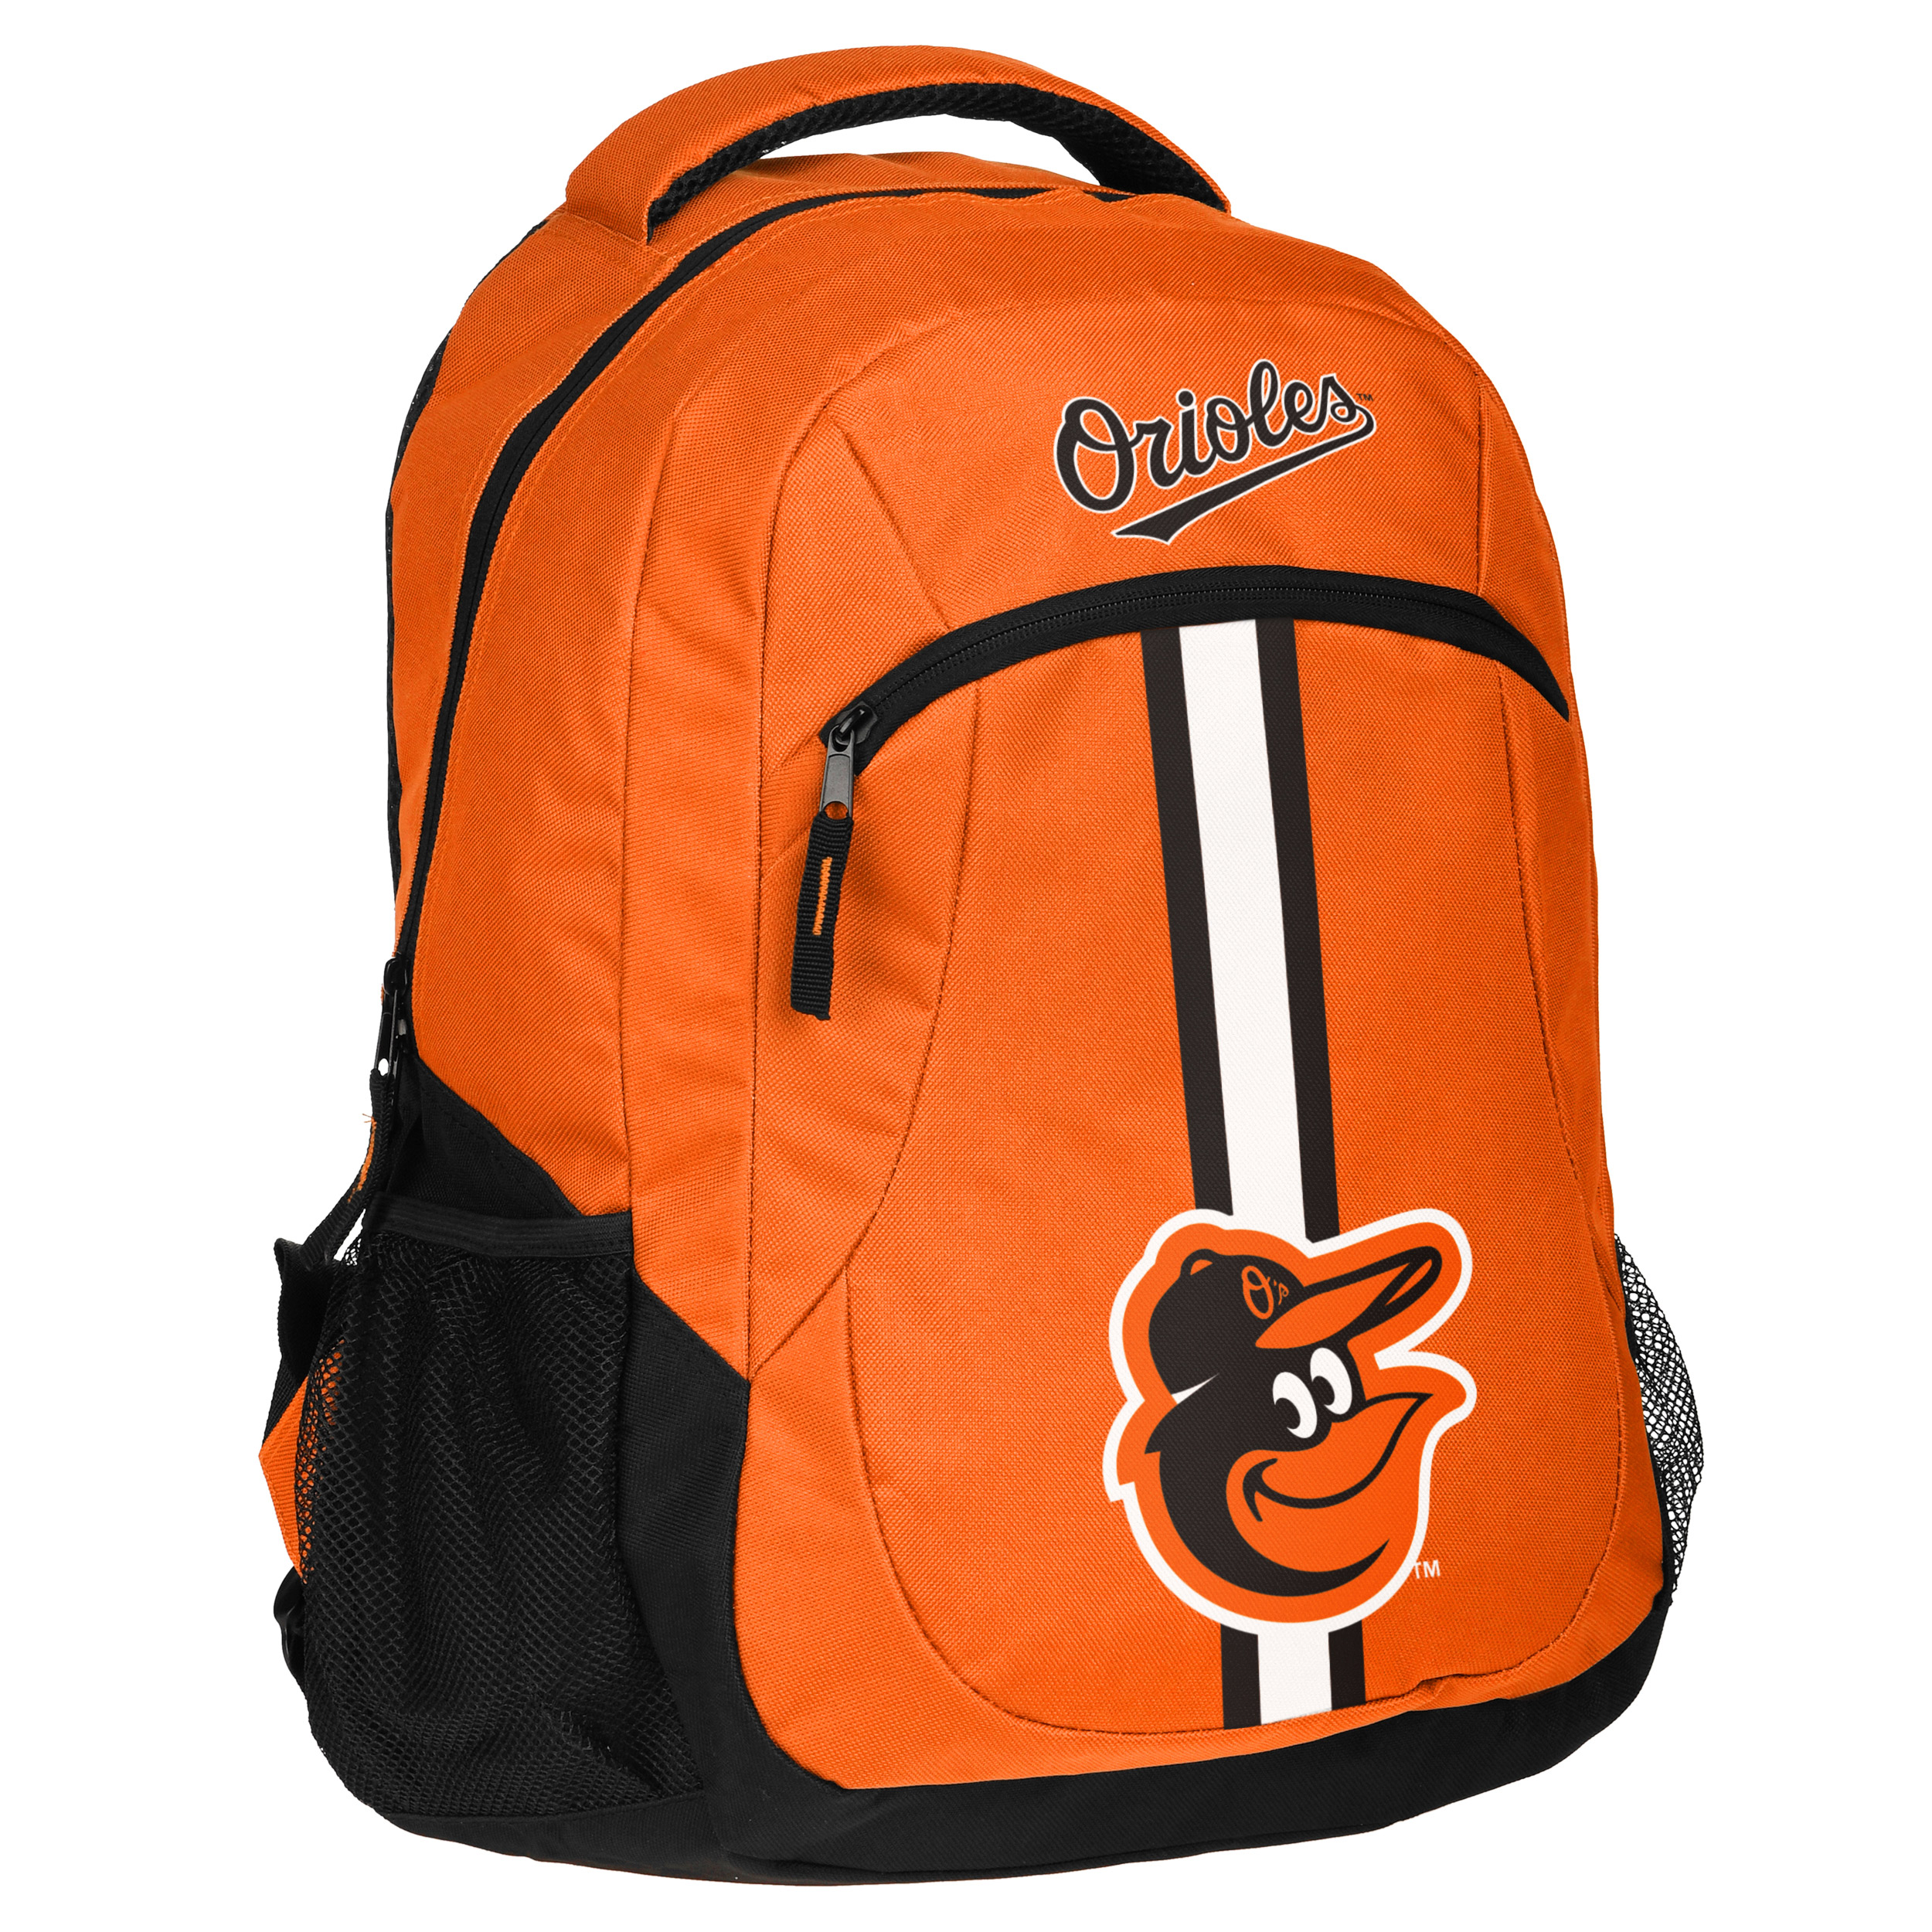 Baltimore Orioles Action Backpack - No Size